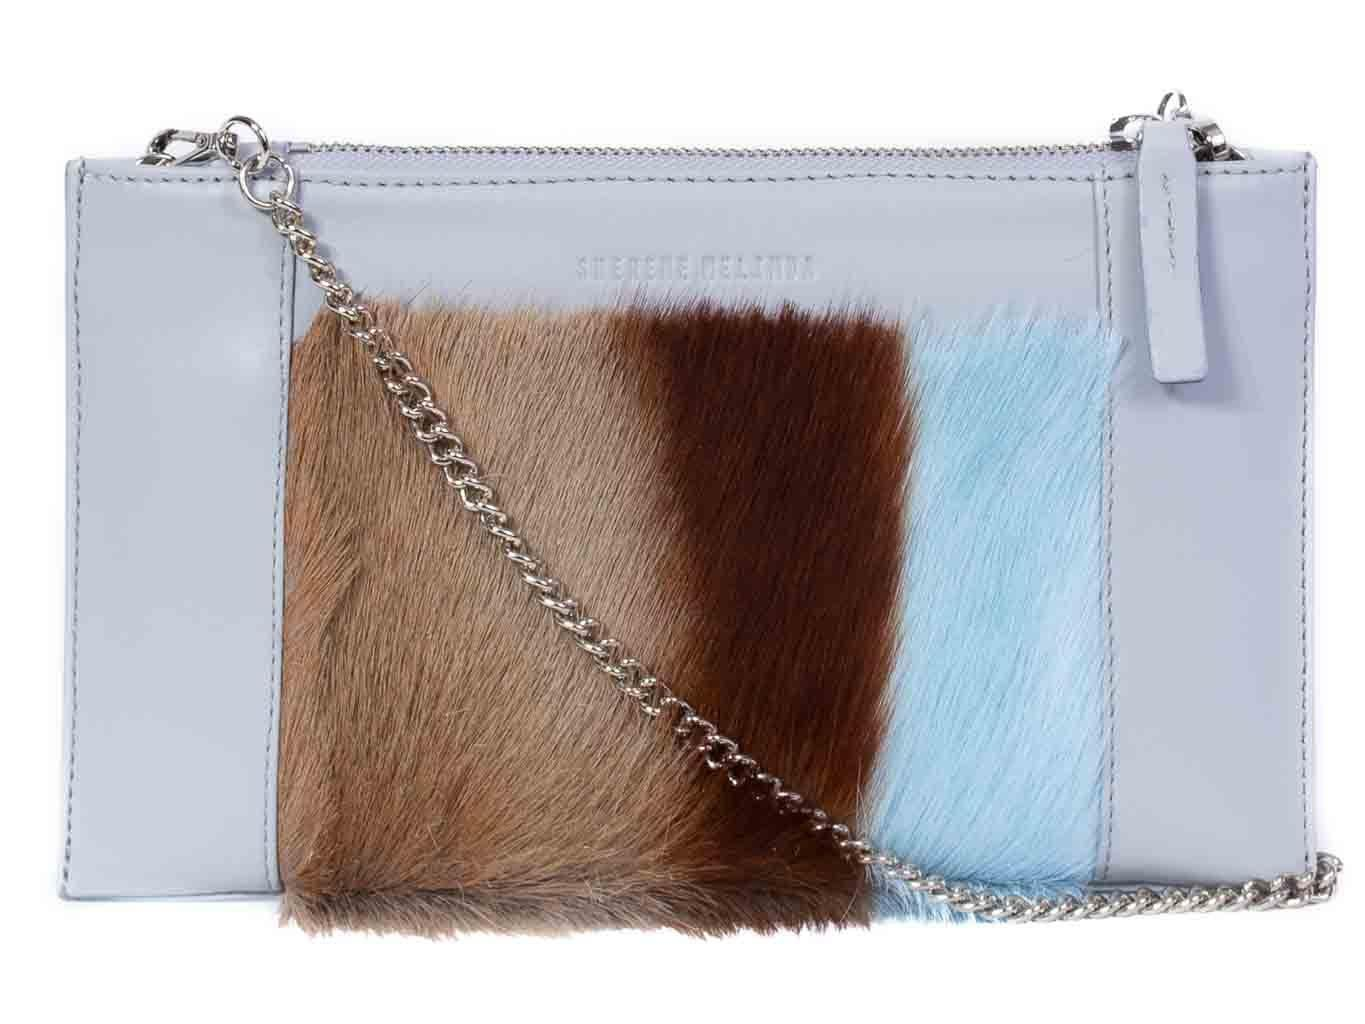 Clutch Springbok Handbag in Baby Blue with a stripe feature by Sherene Melinda front strap